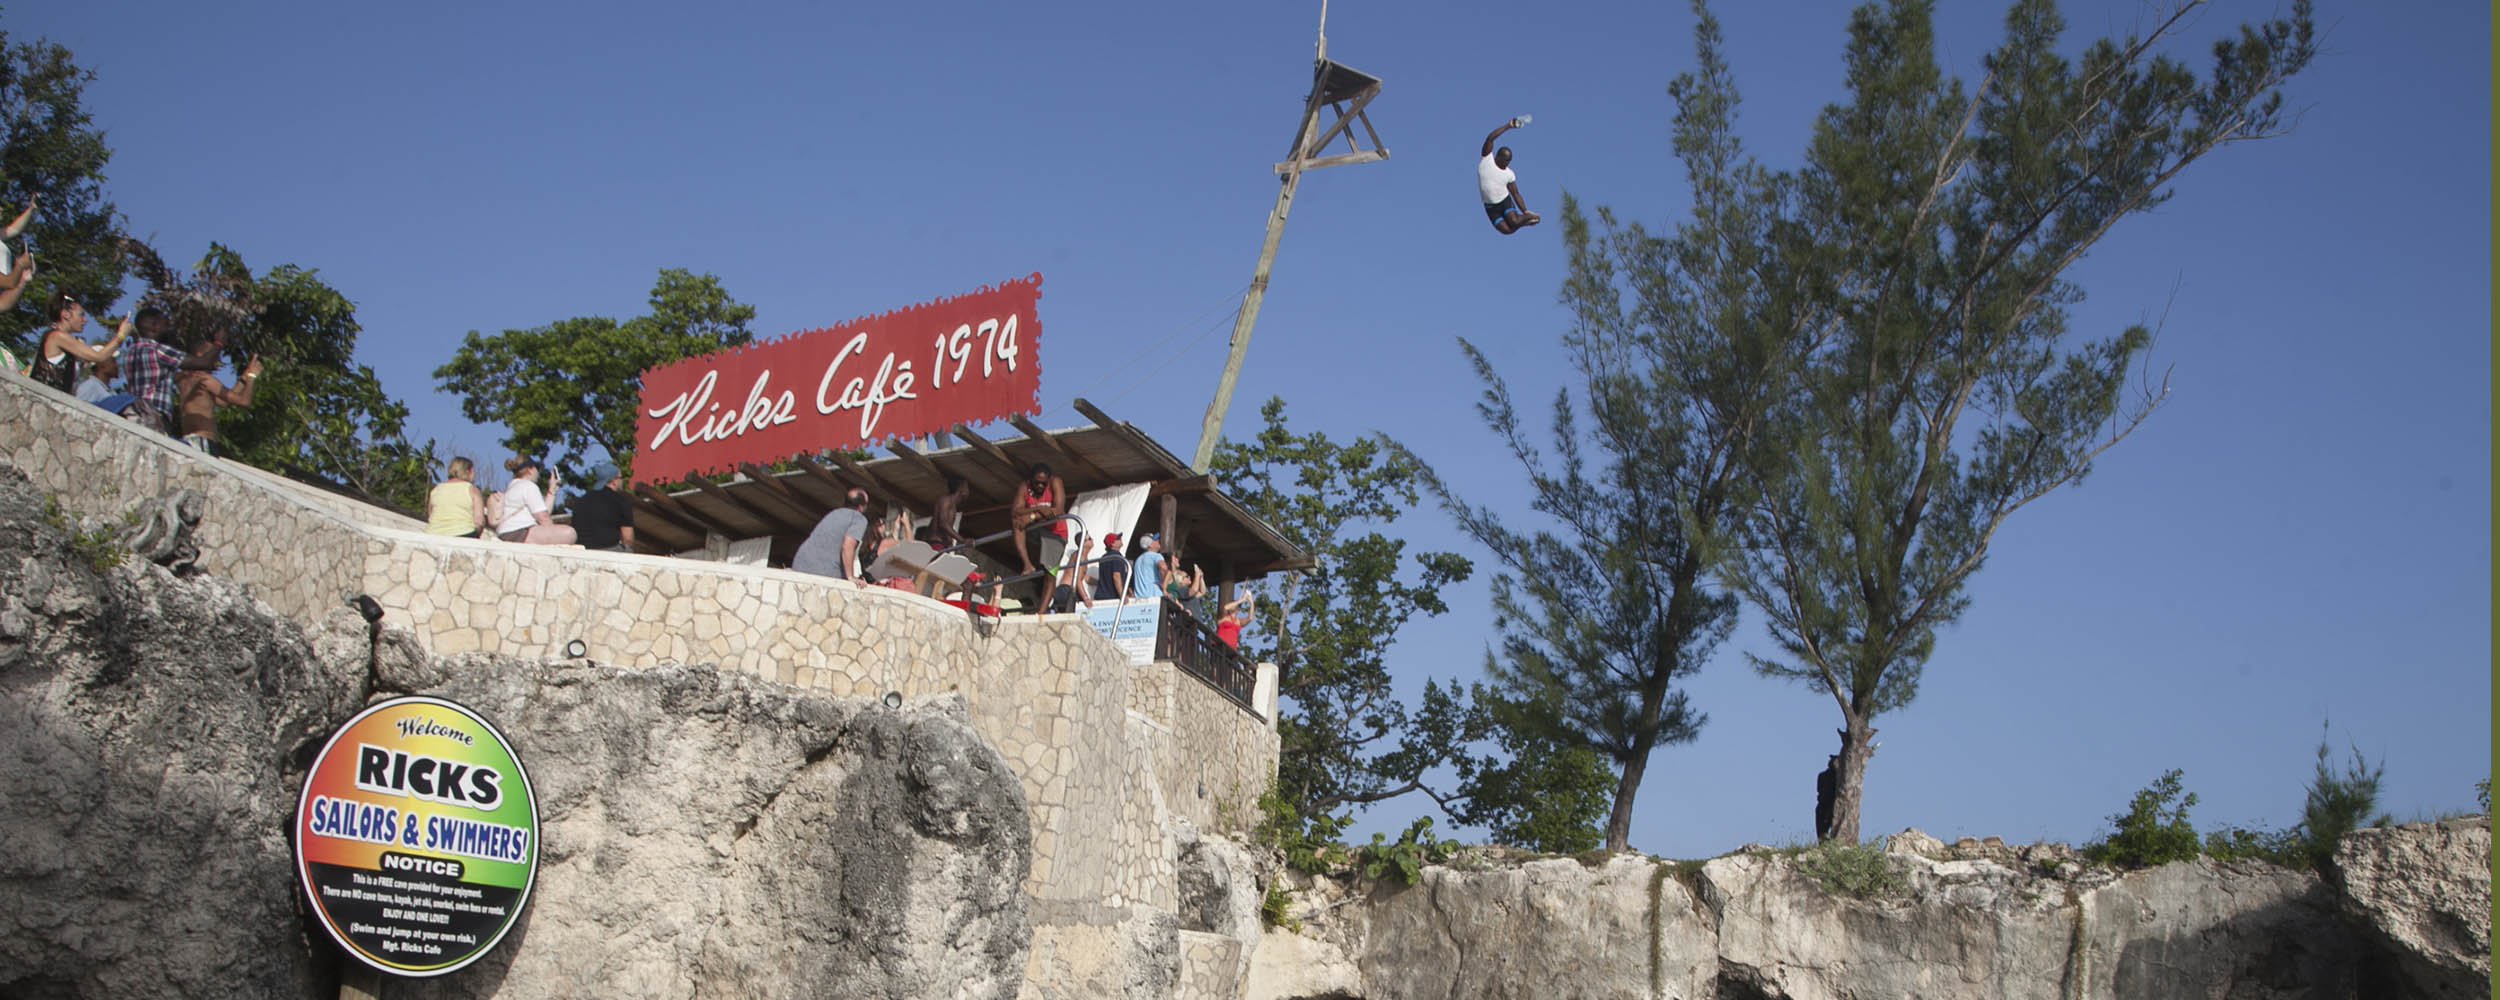 Rick's Cafe´, West End, Negril Jamaica